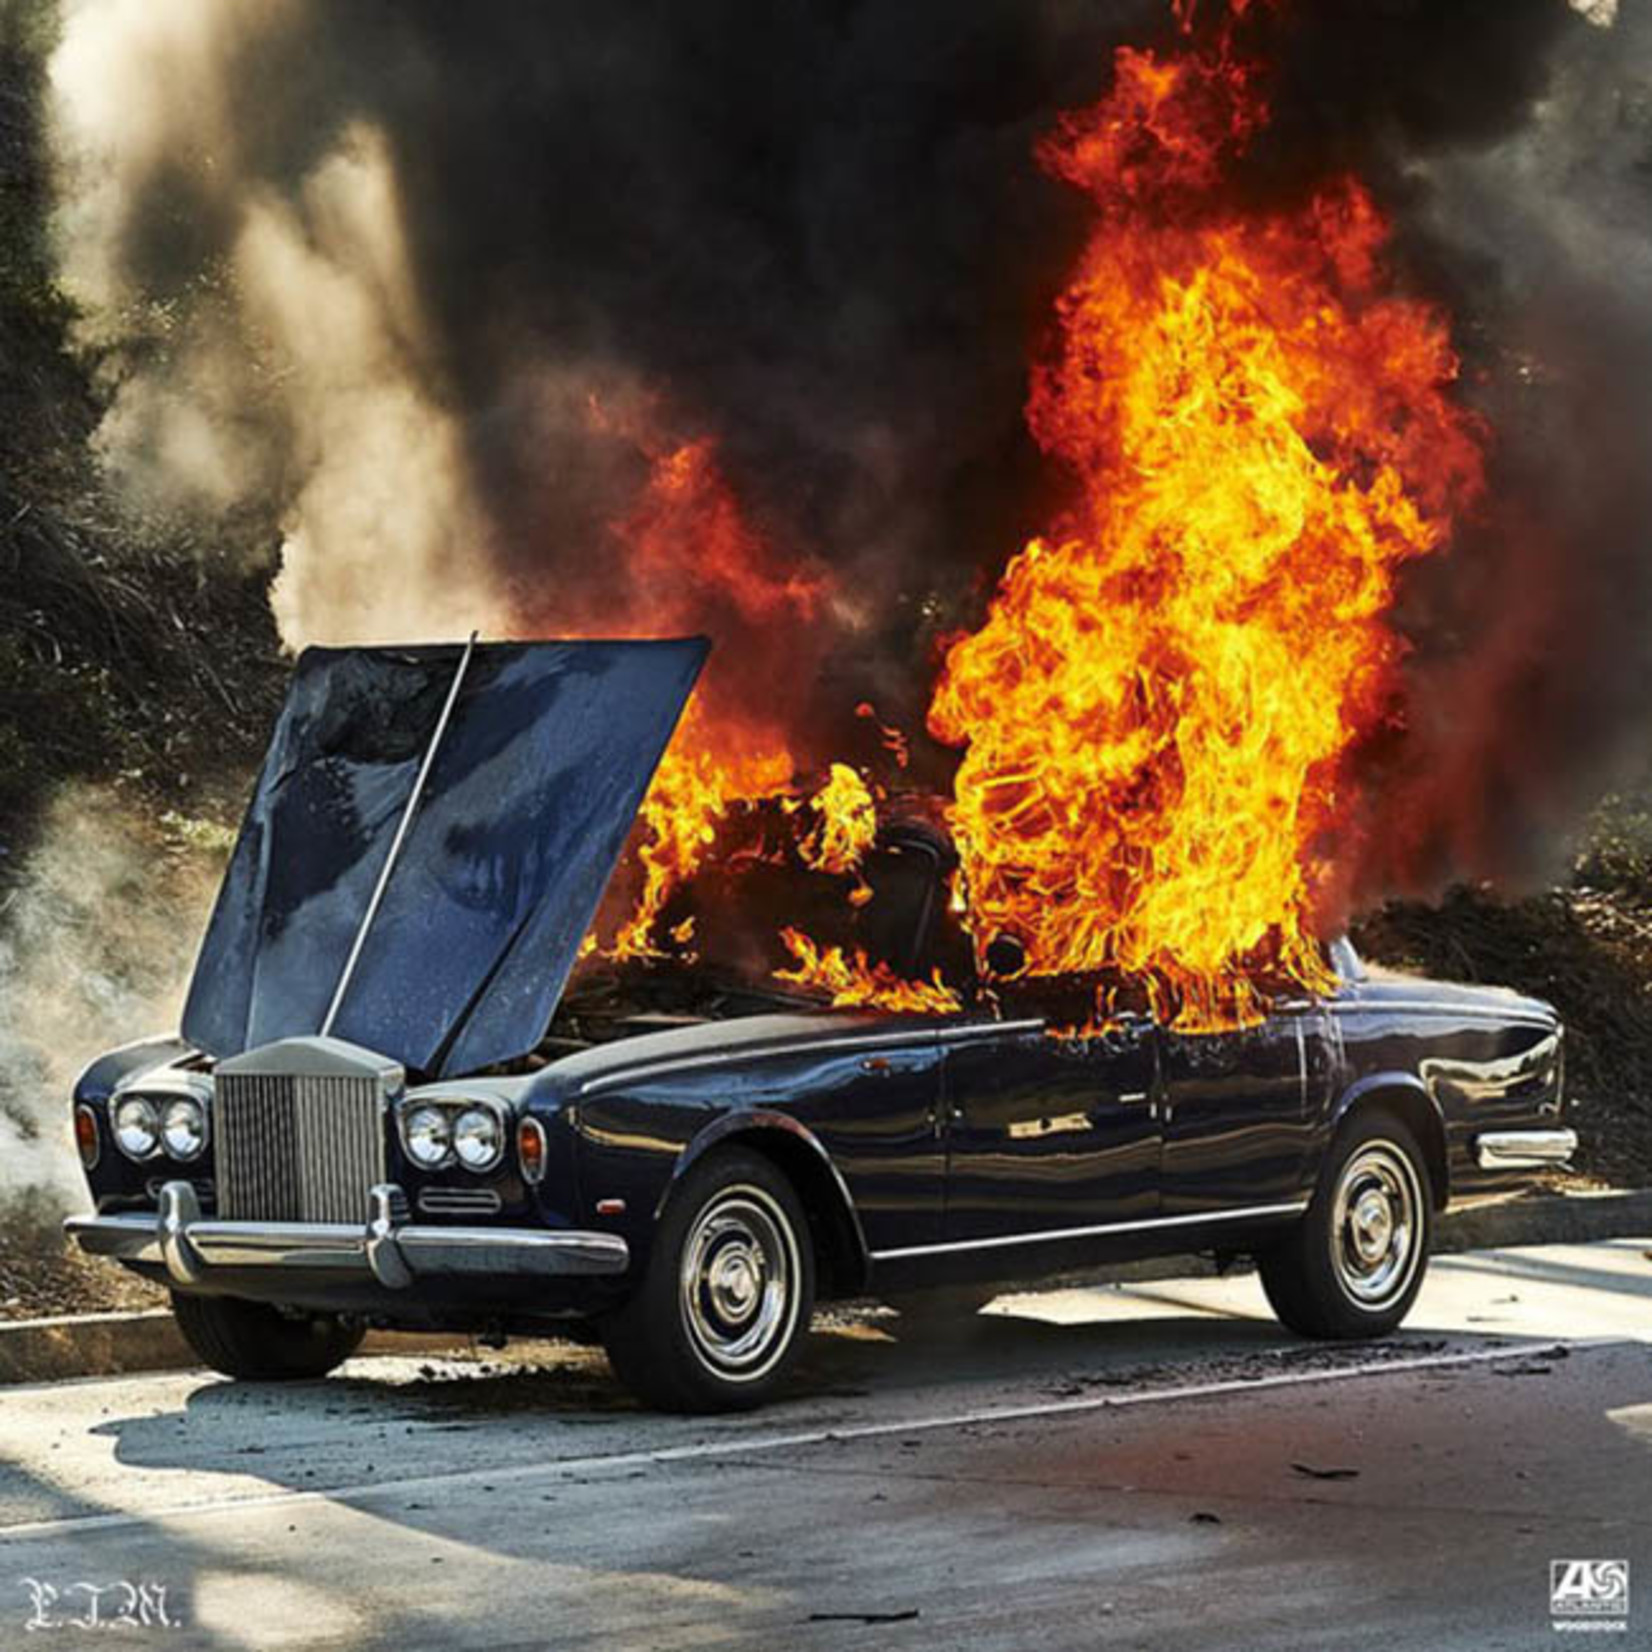 [New] Portugal. The Man: Woodstock